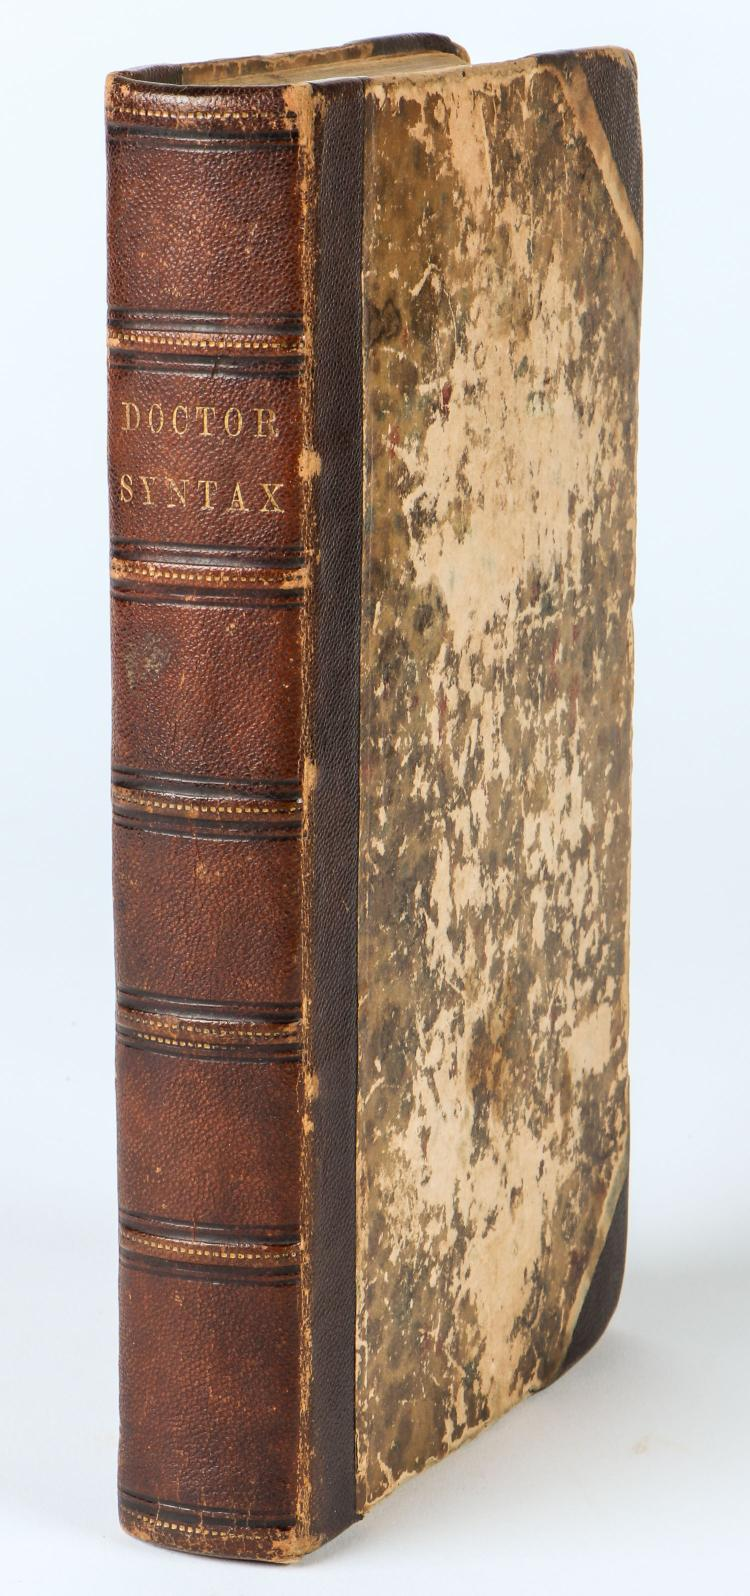 Combe, William. The Tour of Doctor Syntax